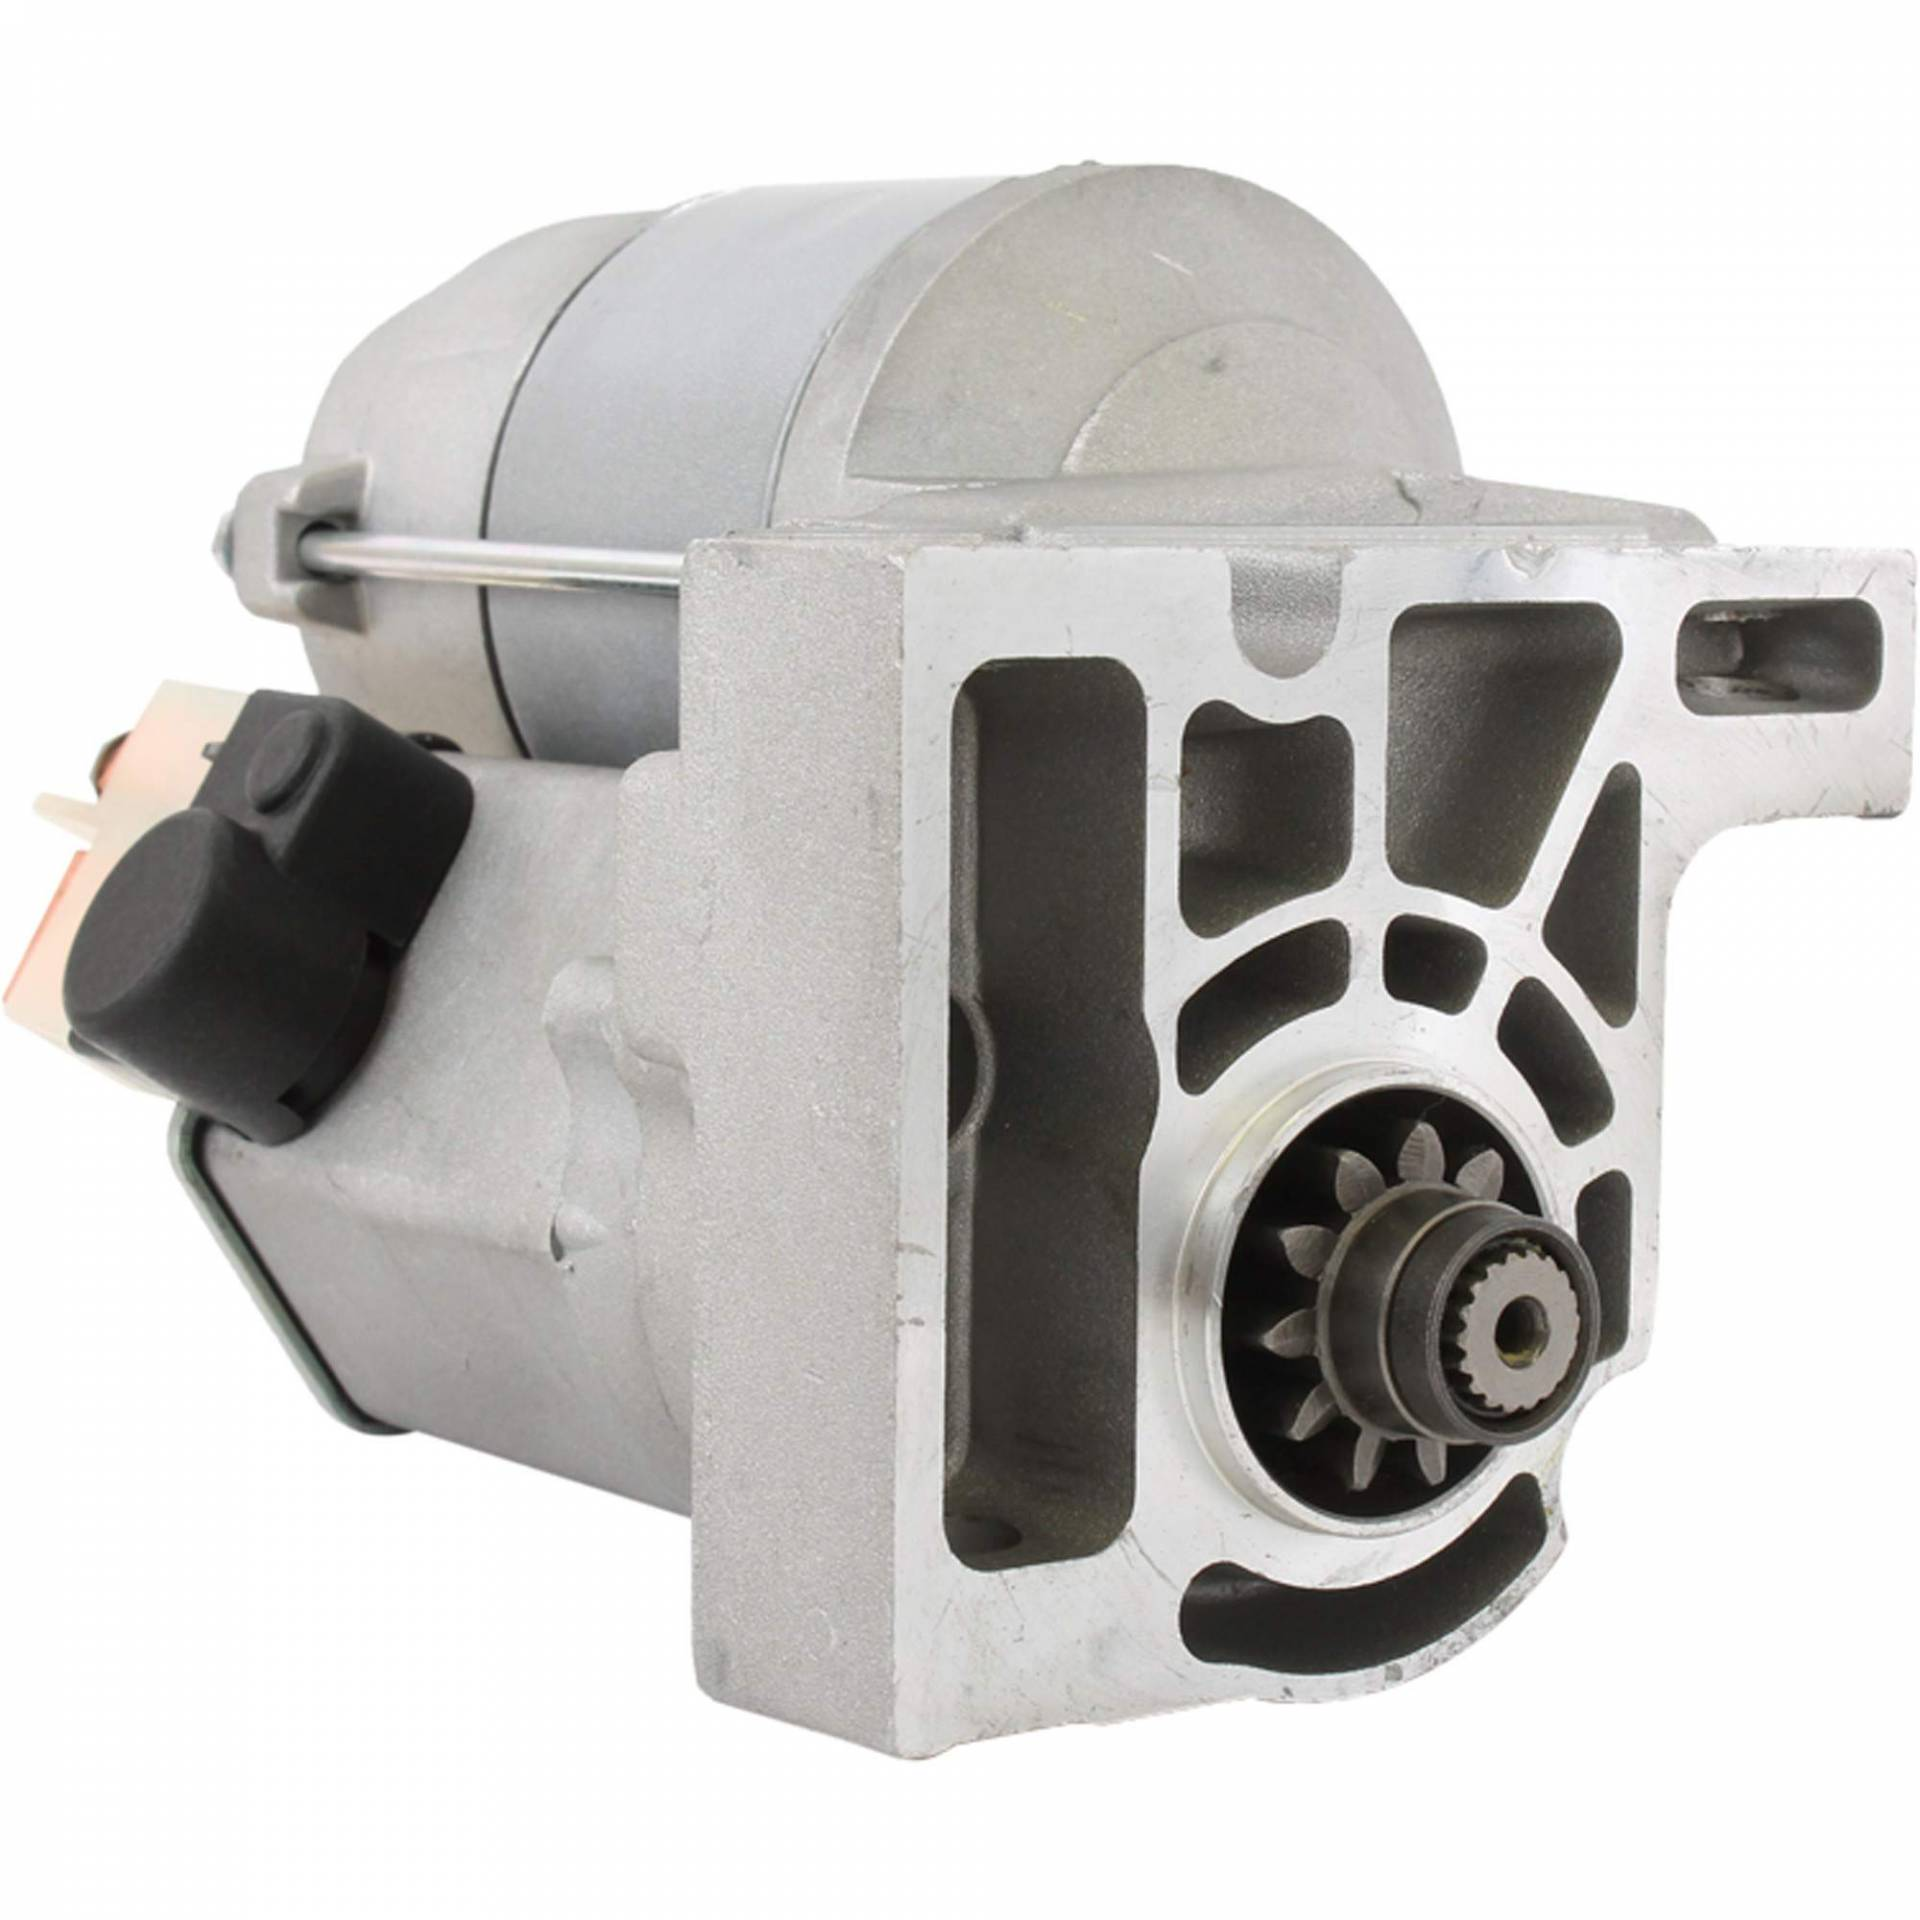 DB Electrical SND0117 Starter für Chevy 5.7 5.7L Corvette 92 93 94 95 96/10455703, 10455709,128000-8110, 128000-8111. von DB Electrical